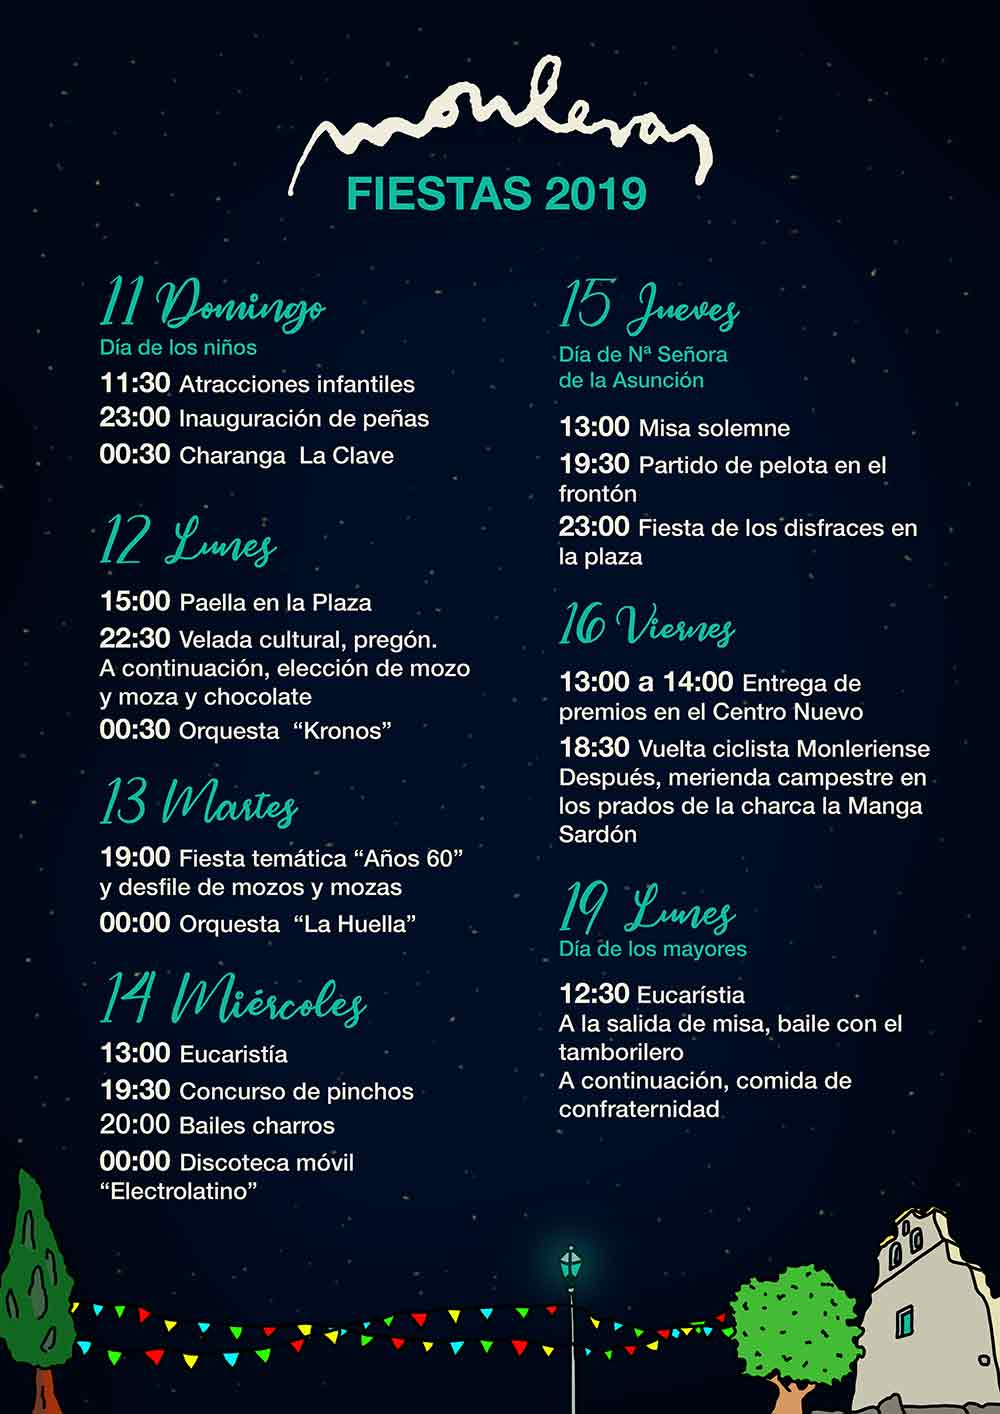 cartelfiestas2019 web